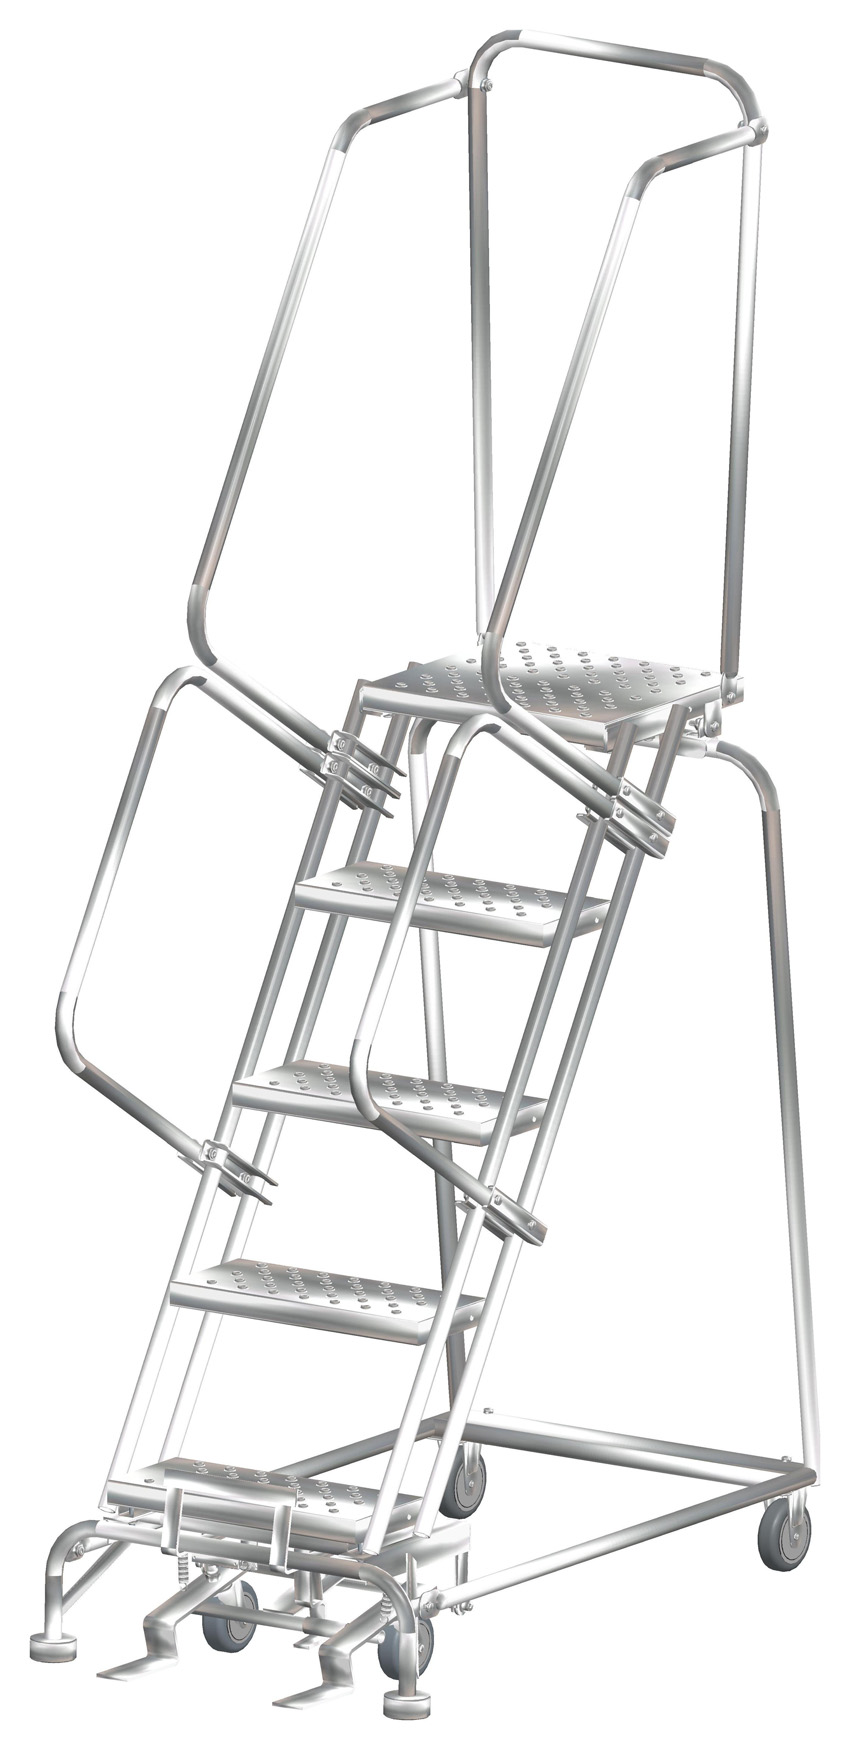 Ballymore Ladder Assembly Instructions